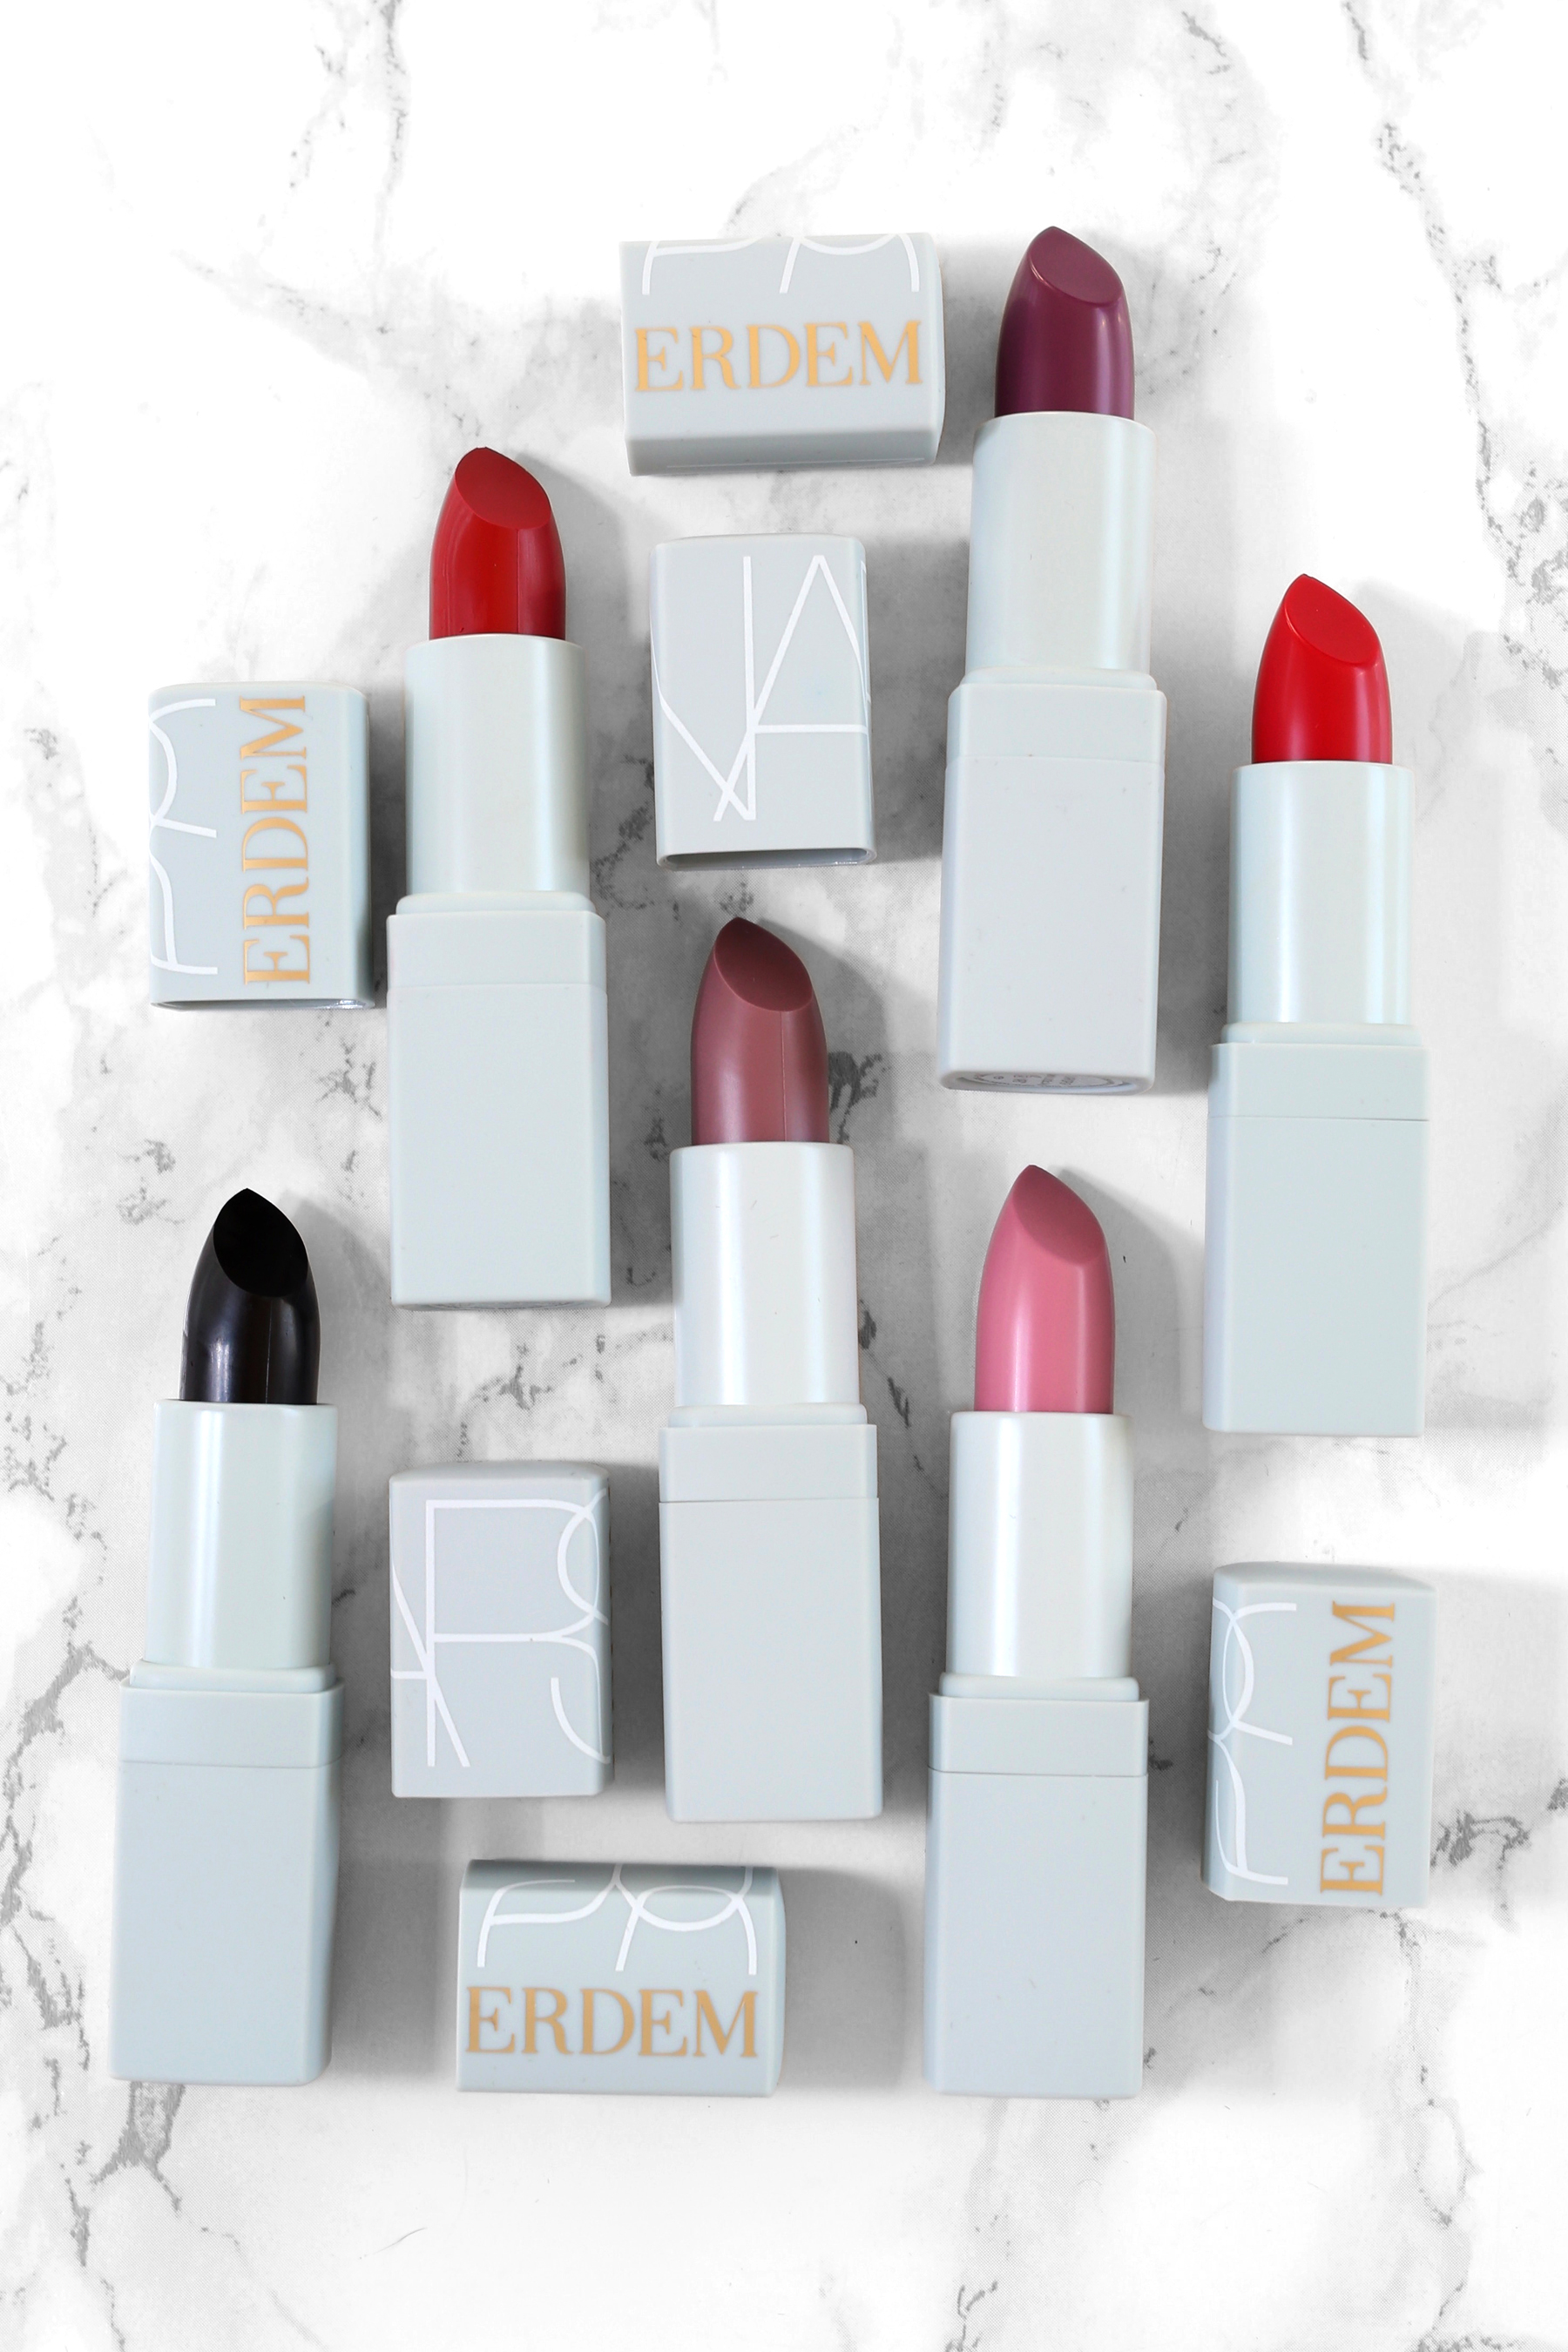 NARS x Erdem Full Lipstick Collection - Carnal Carnation, Bloodflower, Wild Flower, Moon Orchid, Larkspur, Voodoo Lily_9915.jpg